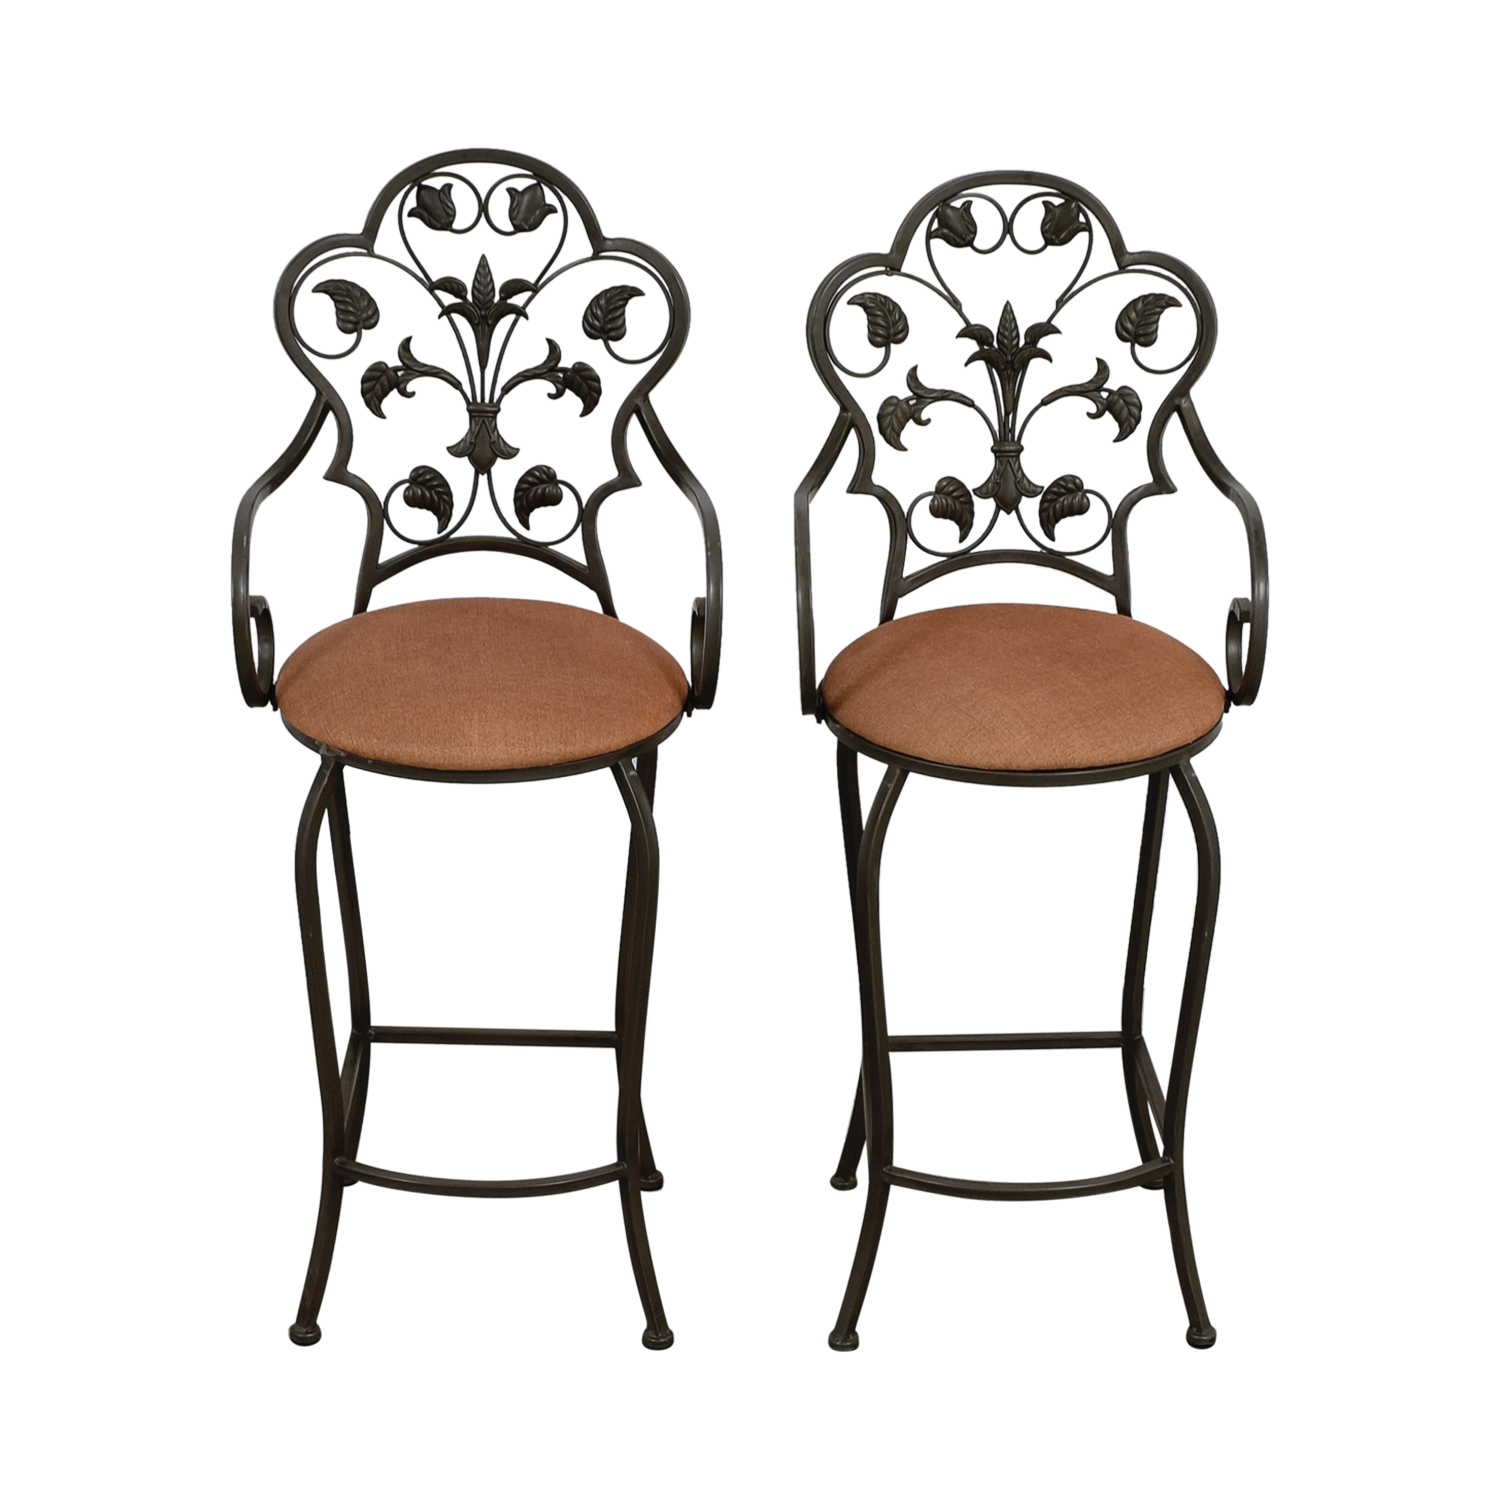 Fabulous 70 Off Scrolled Metal Folding Back Bar Stools Chairs Alphanode Cool Chair Designs And Ideas Alphanodeonline